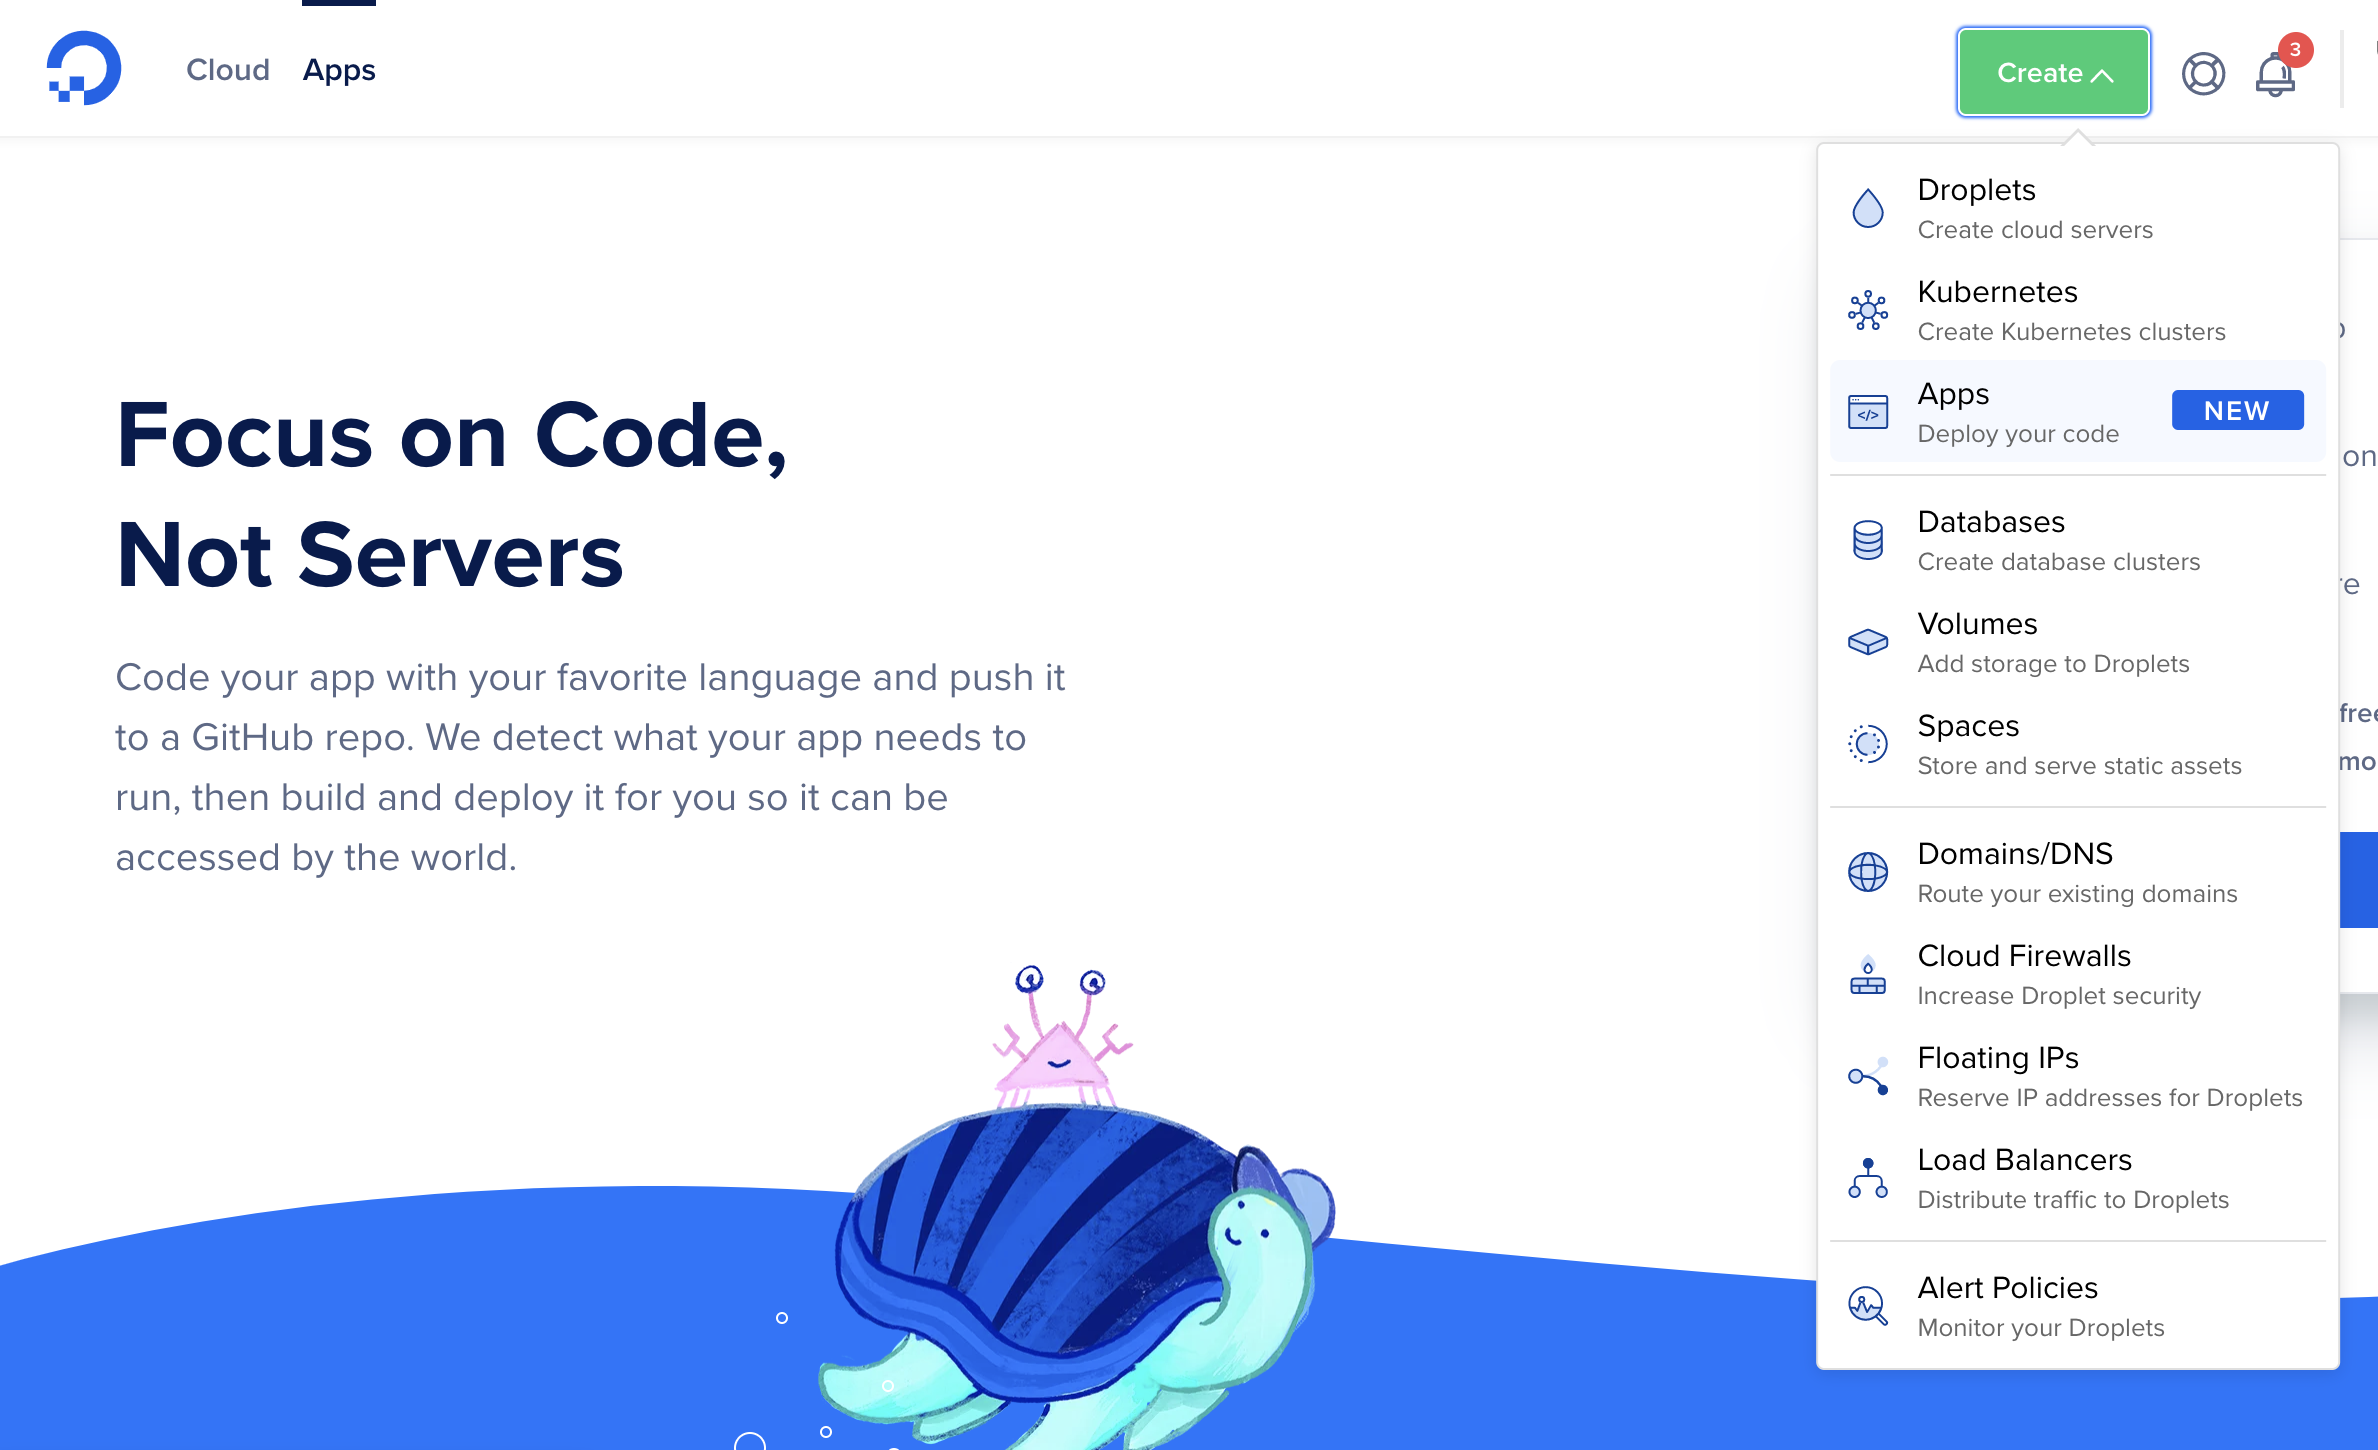 Create a new app page in the DigitalOcean interface